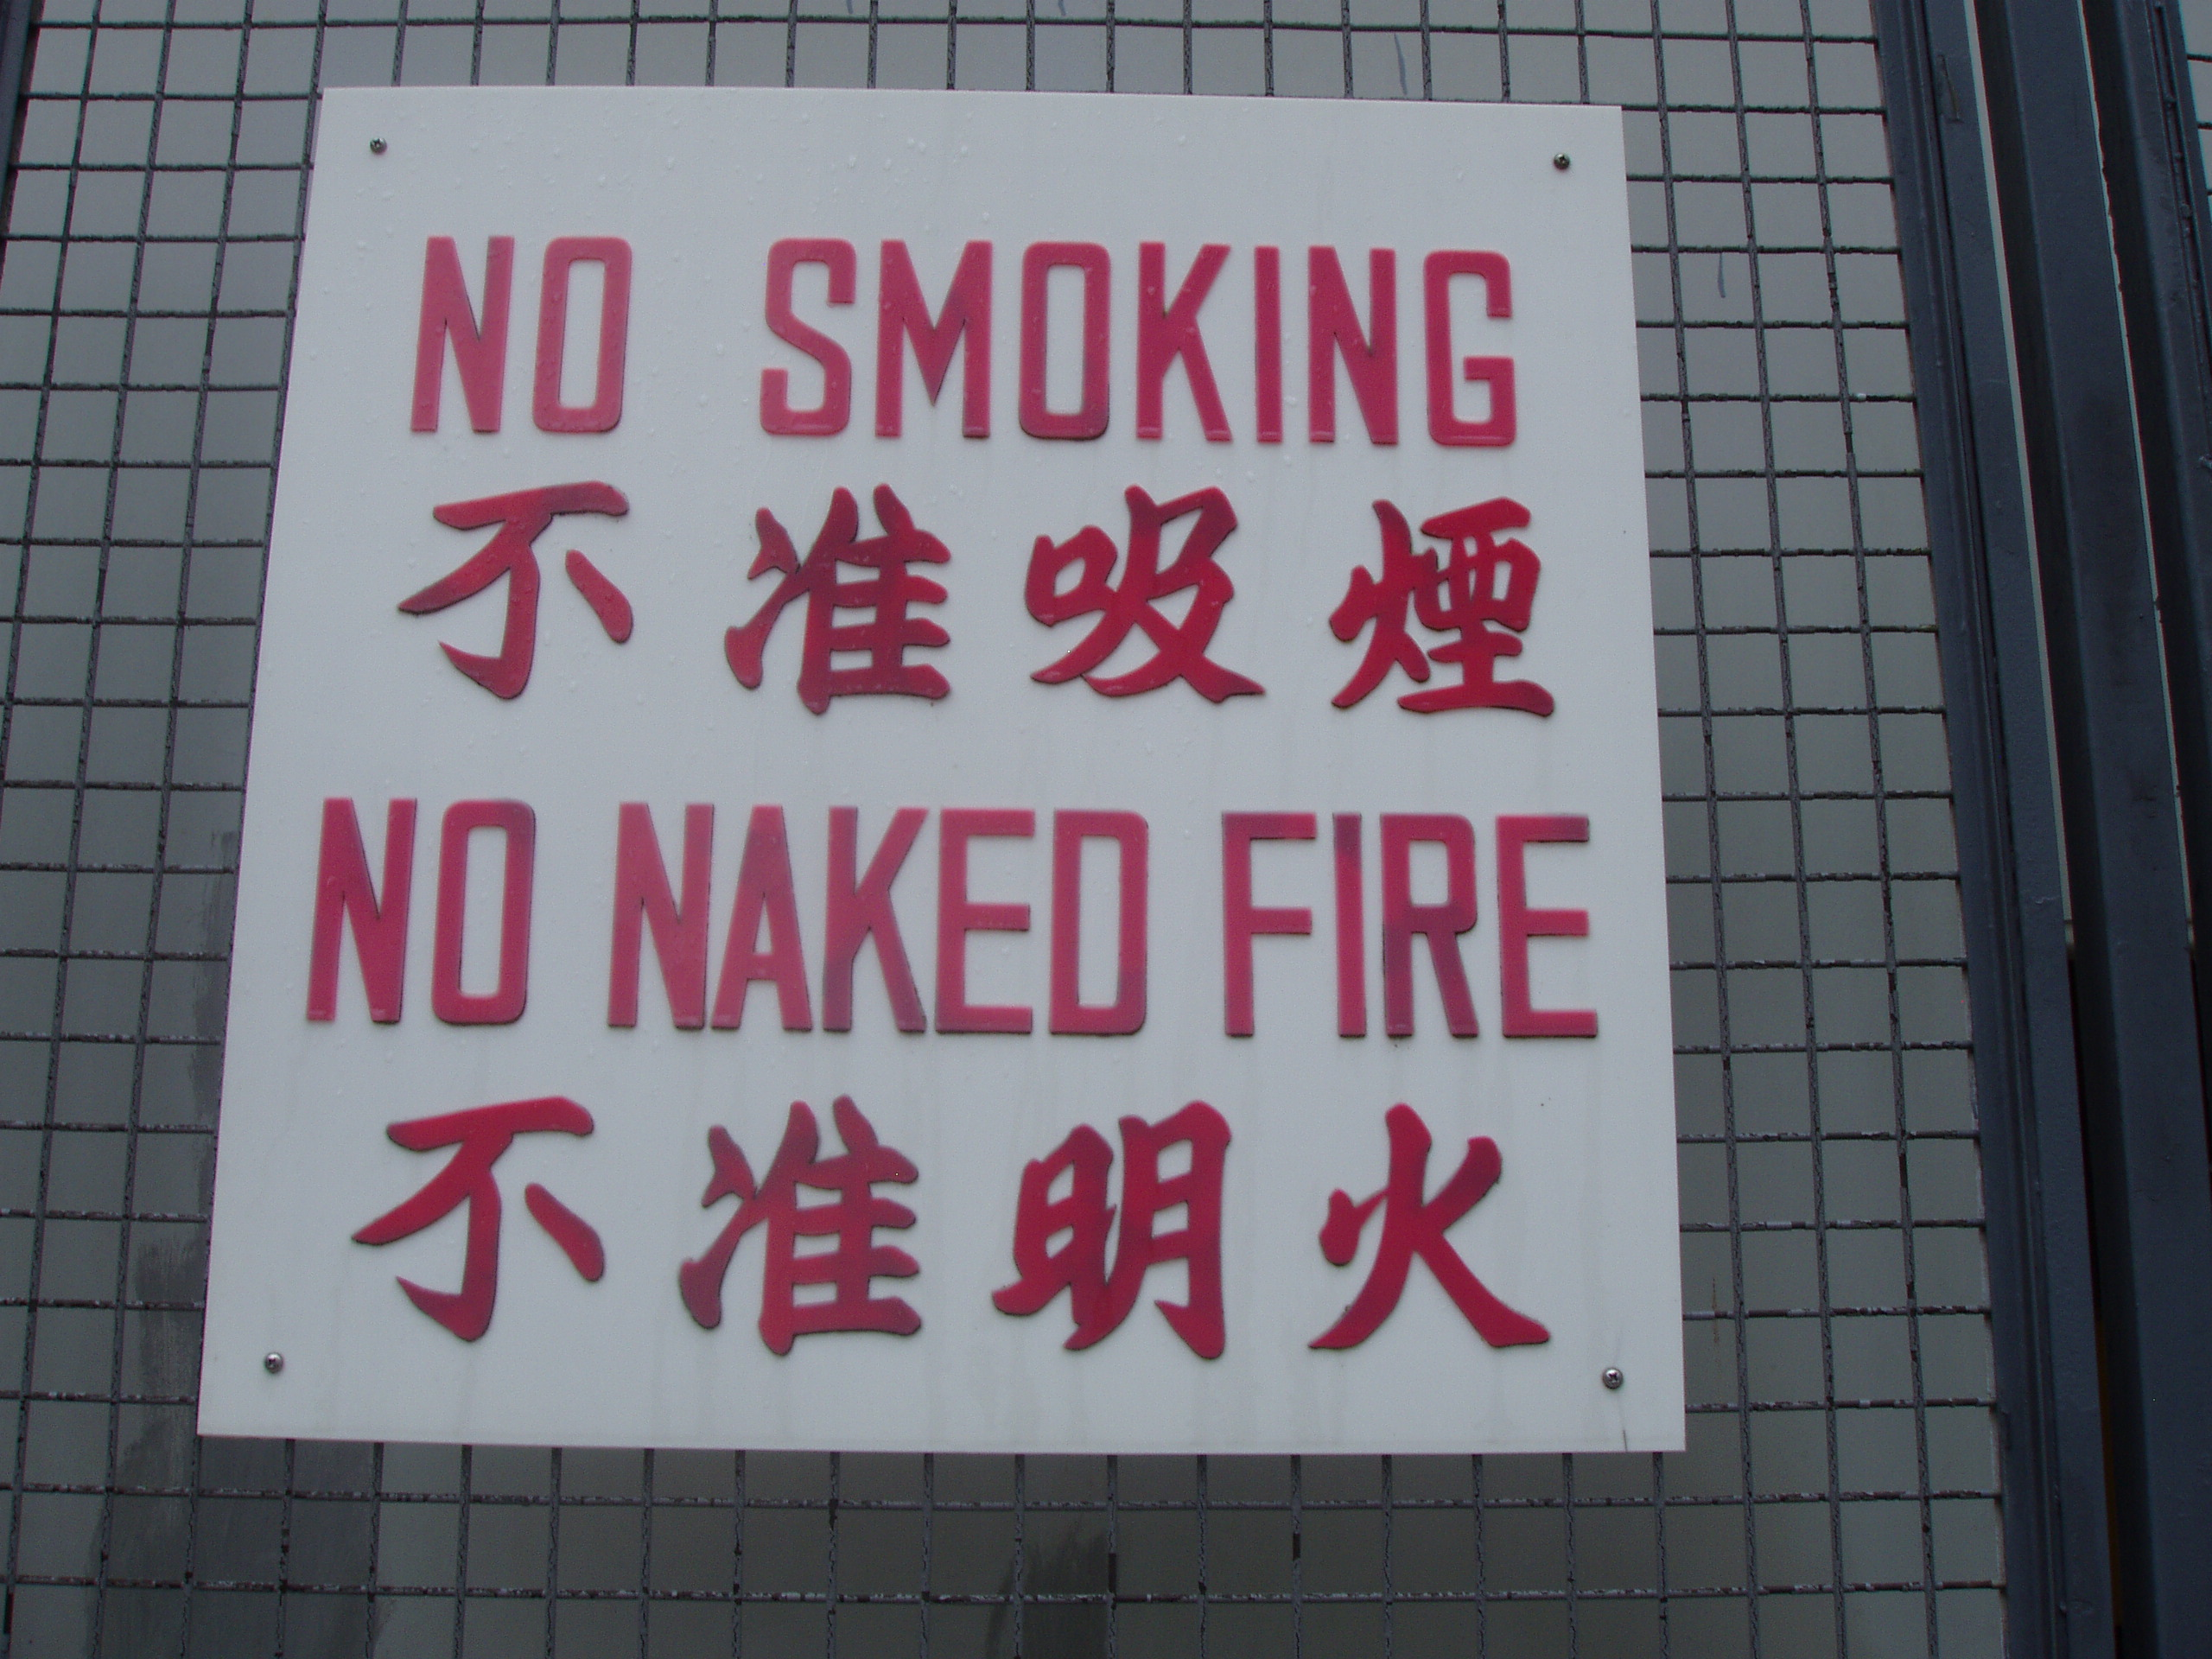 funny translation in English in Hong Kong